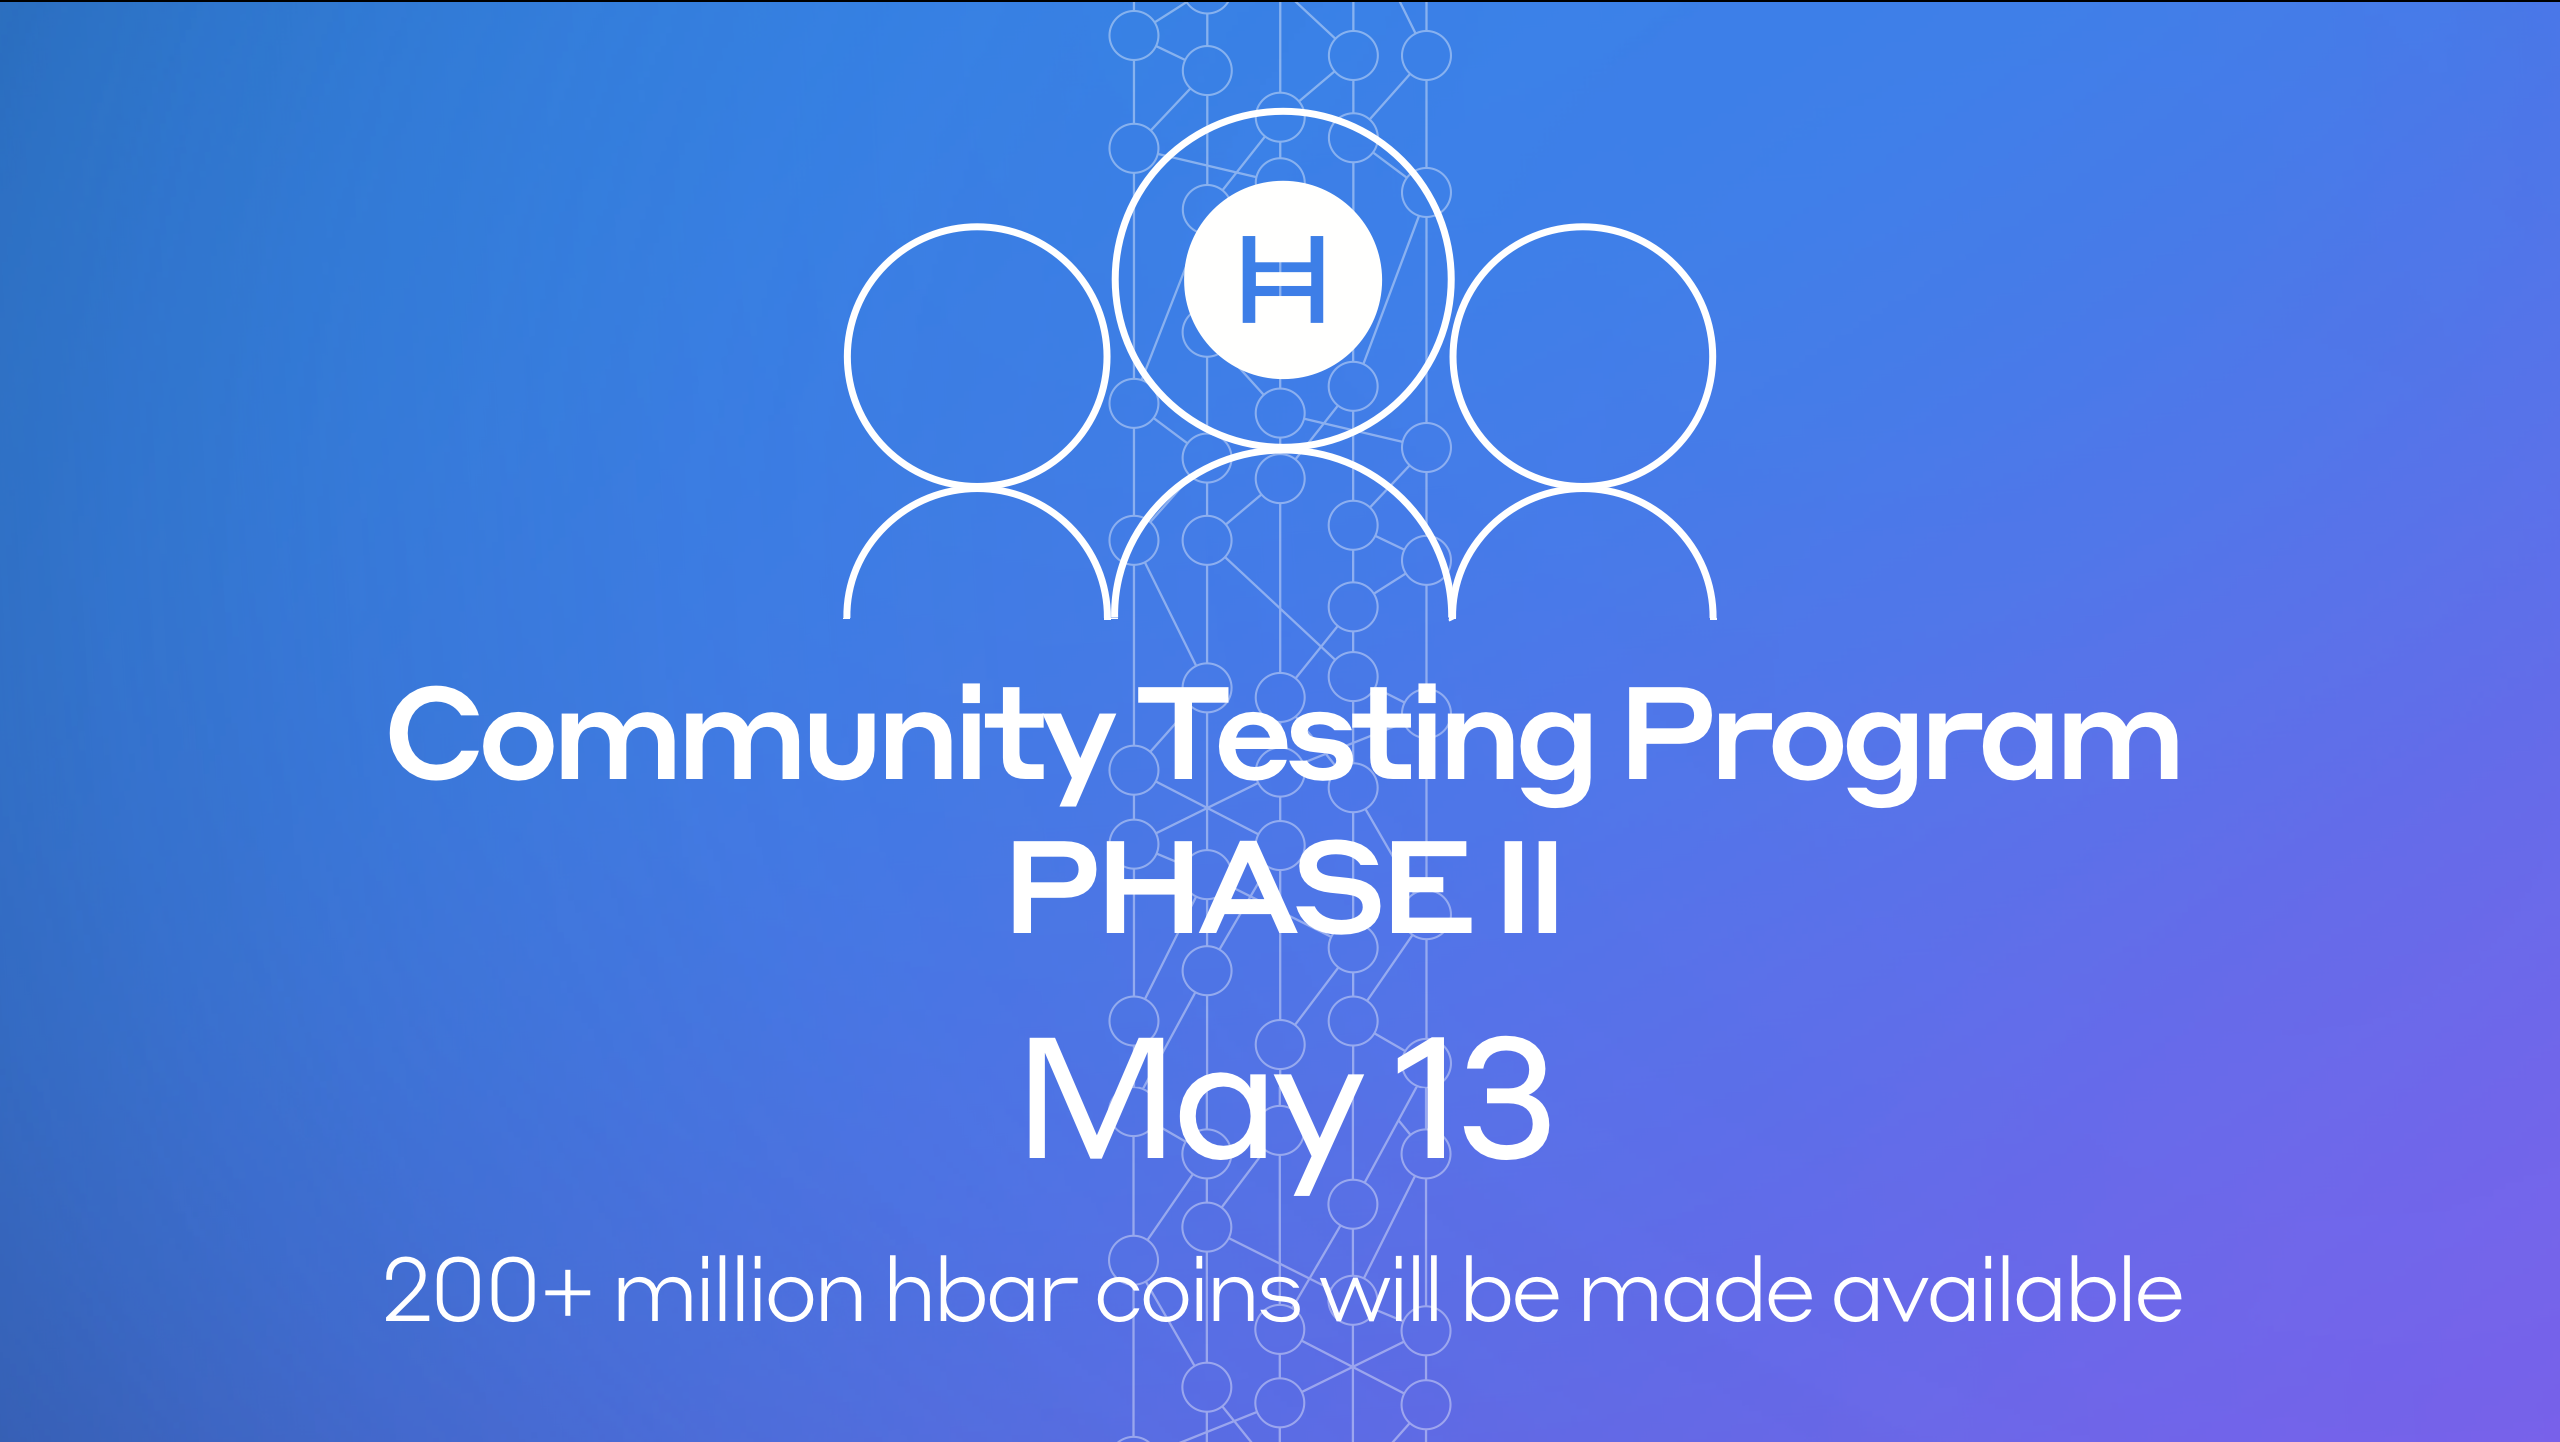 Hedera Hashgraph to Launch Phase II of Community Testing Program